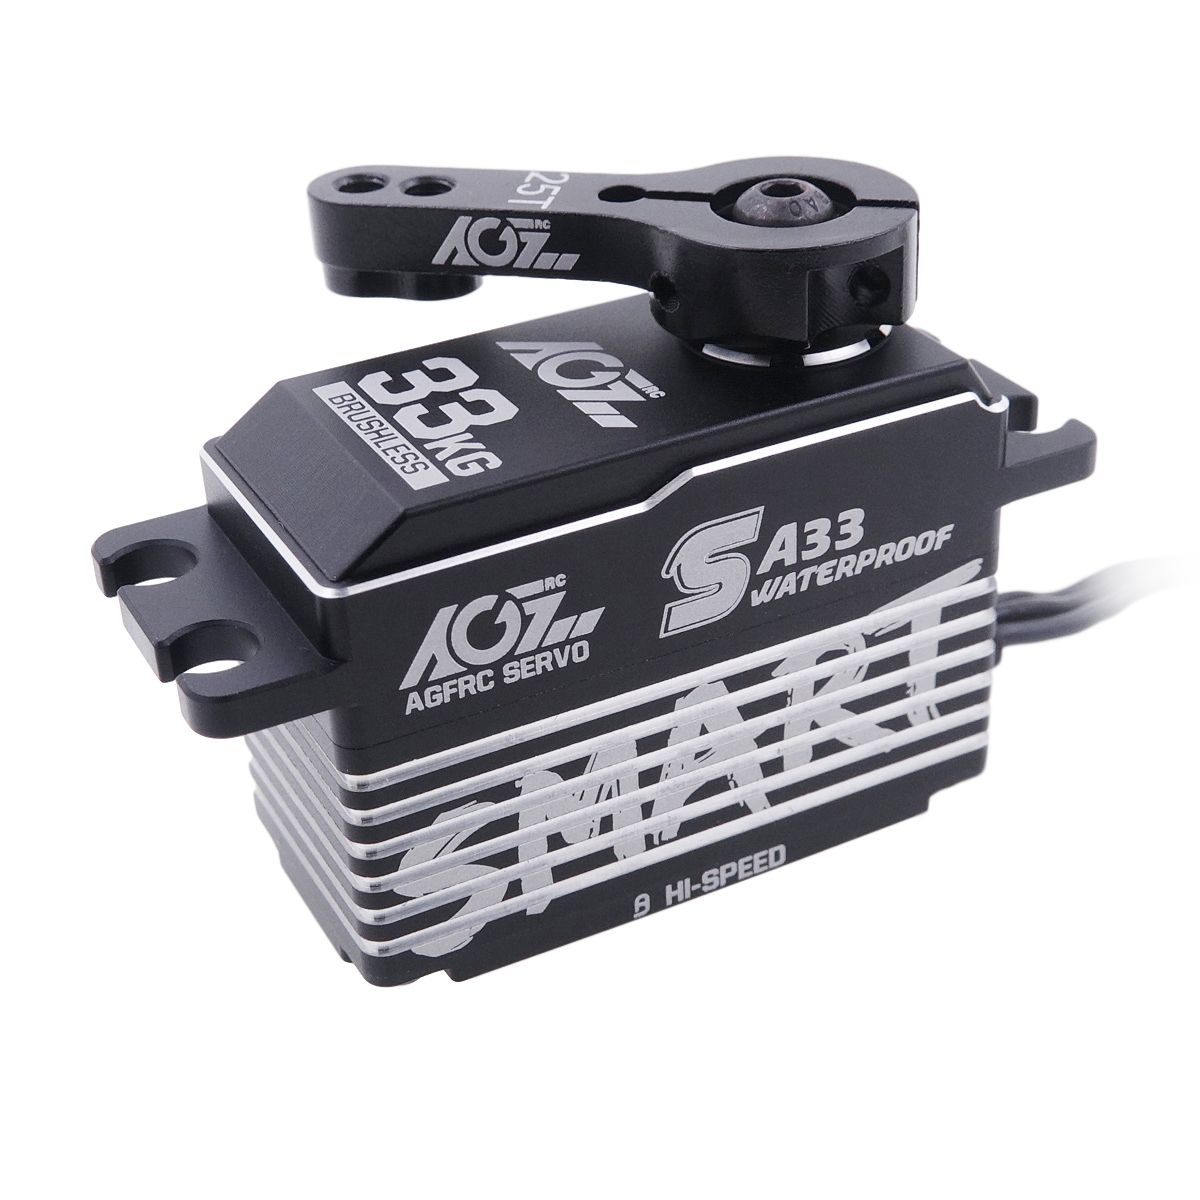 AGFRC SA33 Waterproof Feature HV Superb Speed 0.068Sec 33KG Brushless Low Profile Smart Servo for Winch and Regular Servo Selection